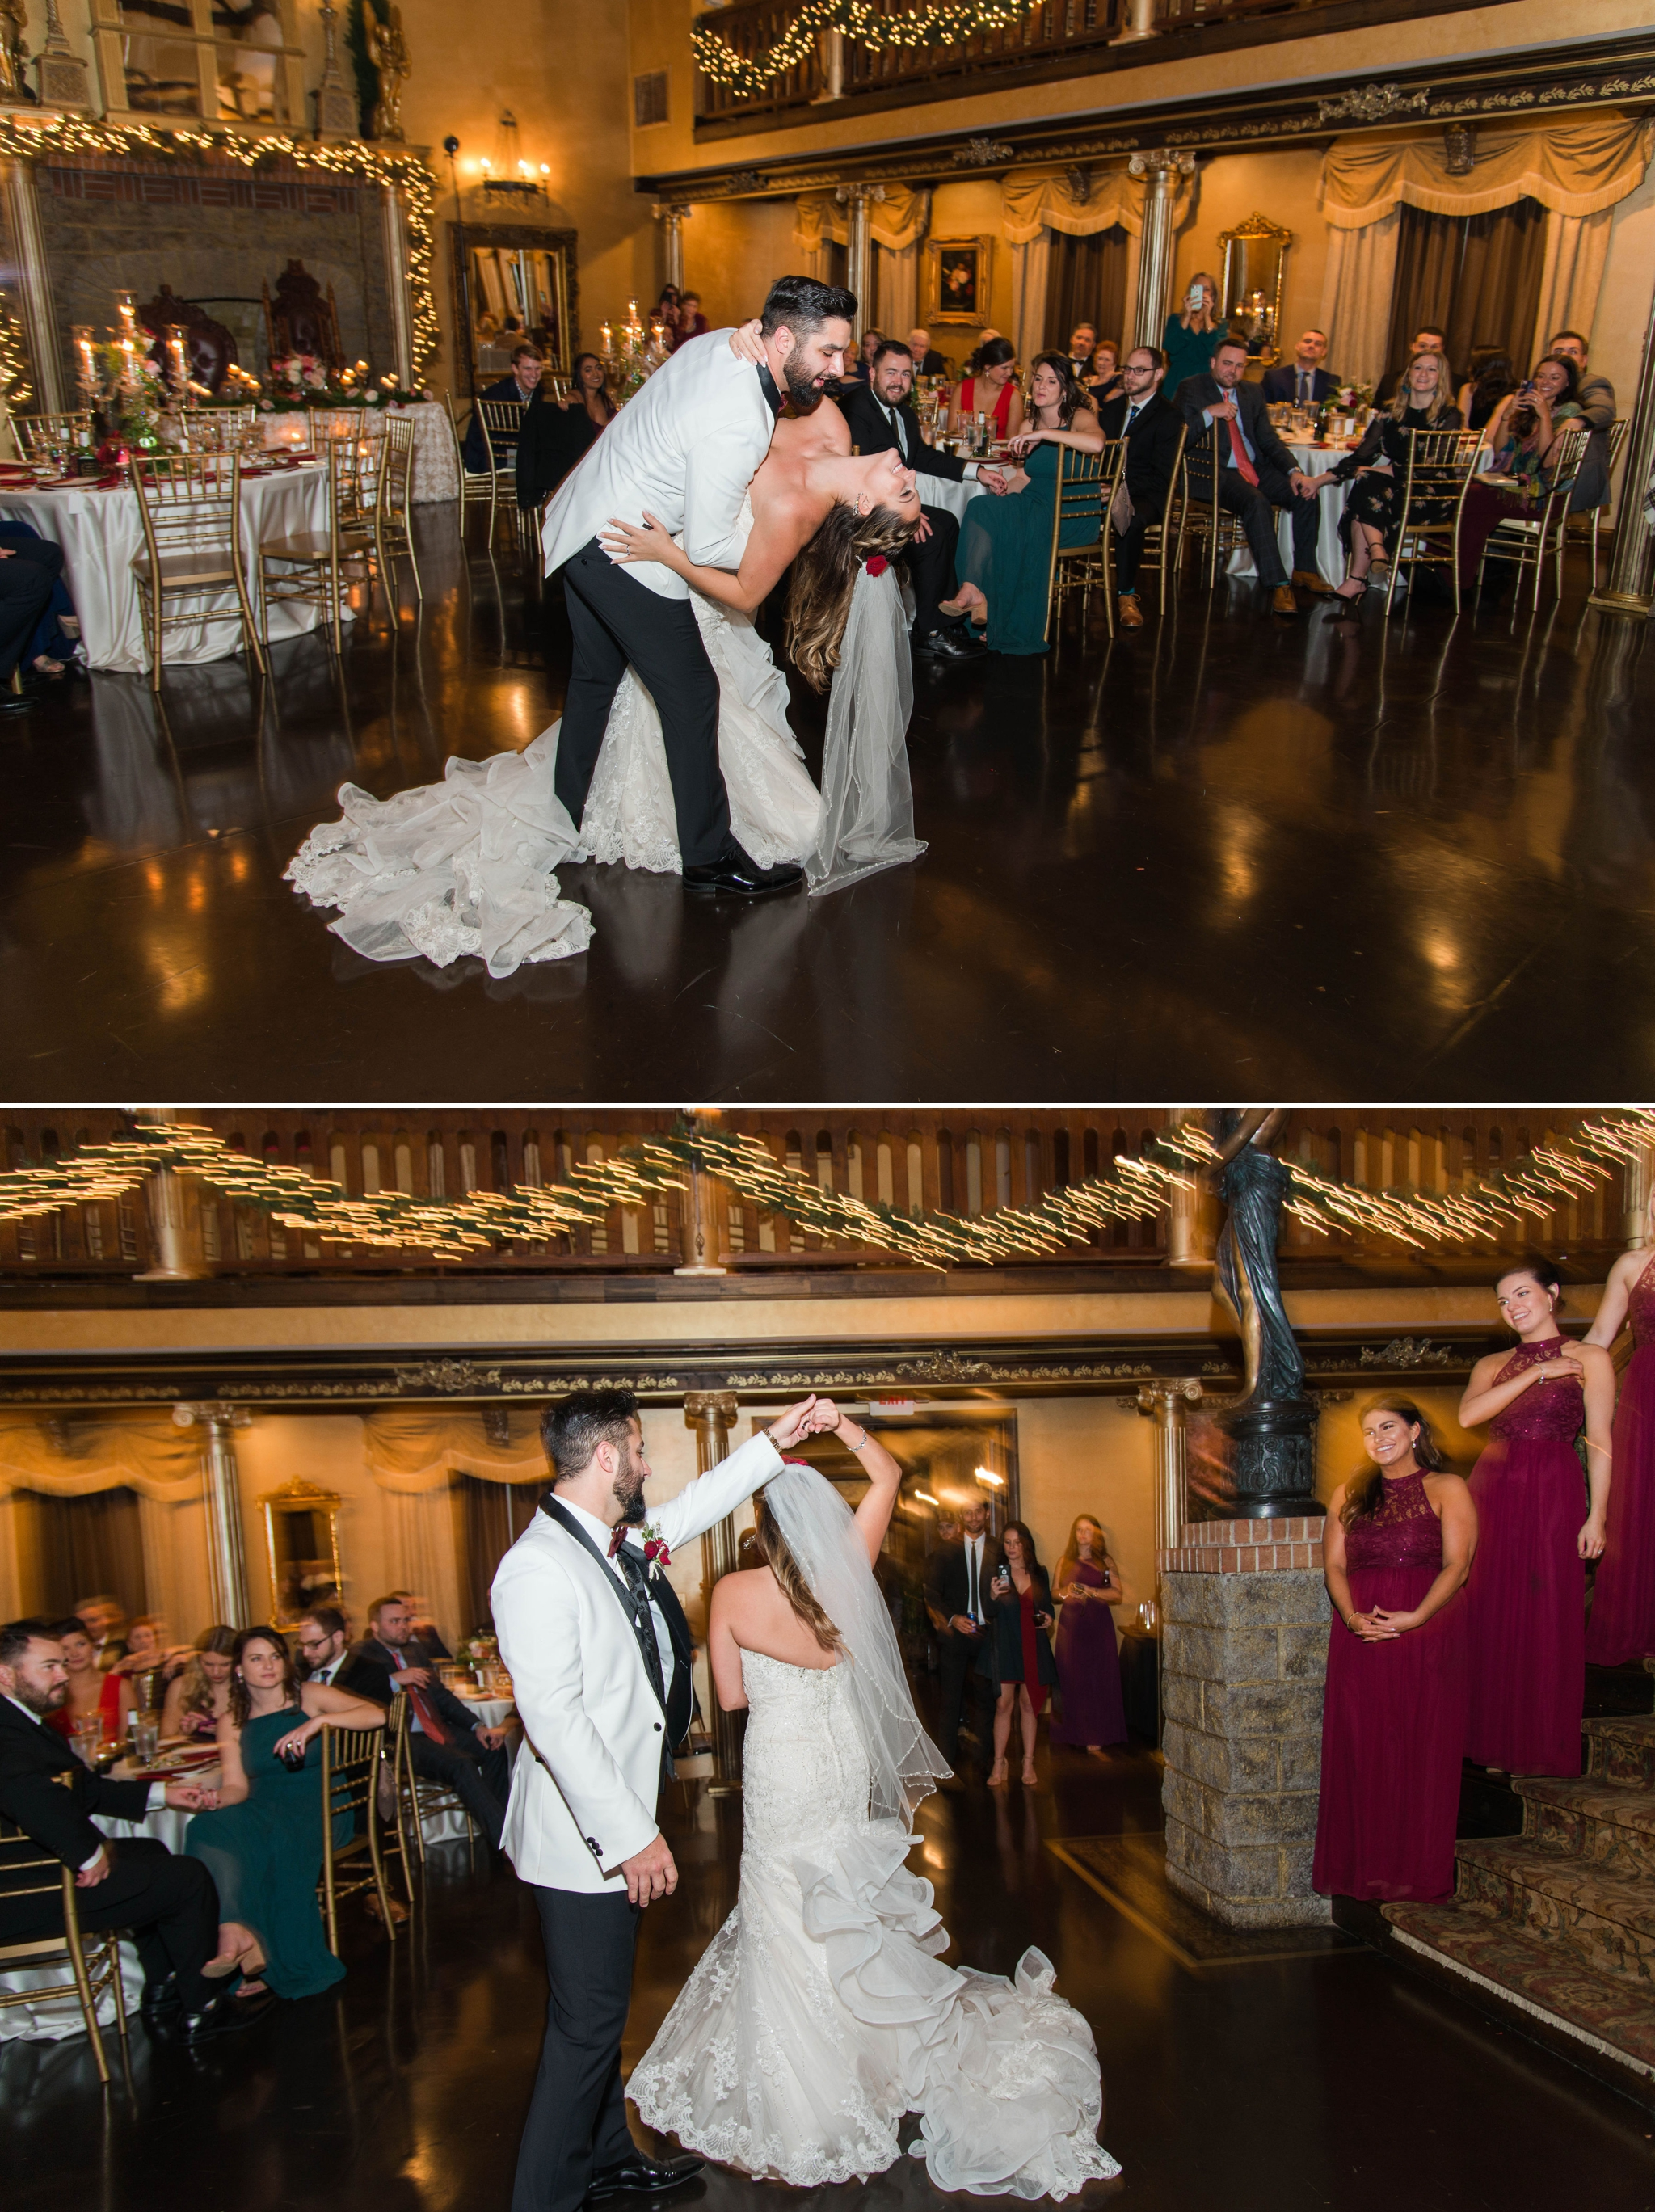 First Dance between Bride and Groom - Honolulu Oahu Hawaii Wedding Photographer